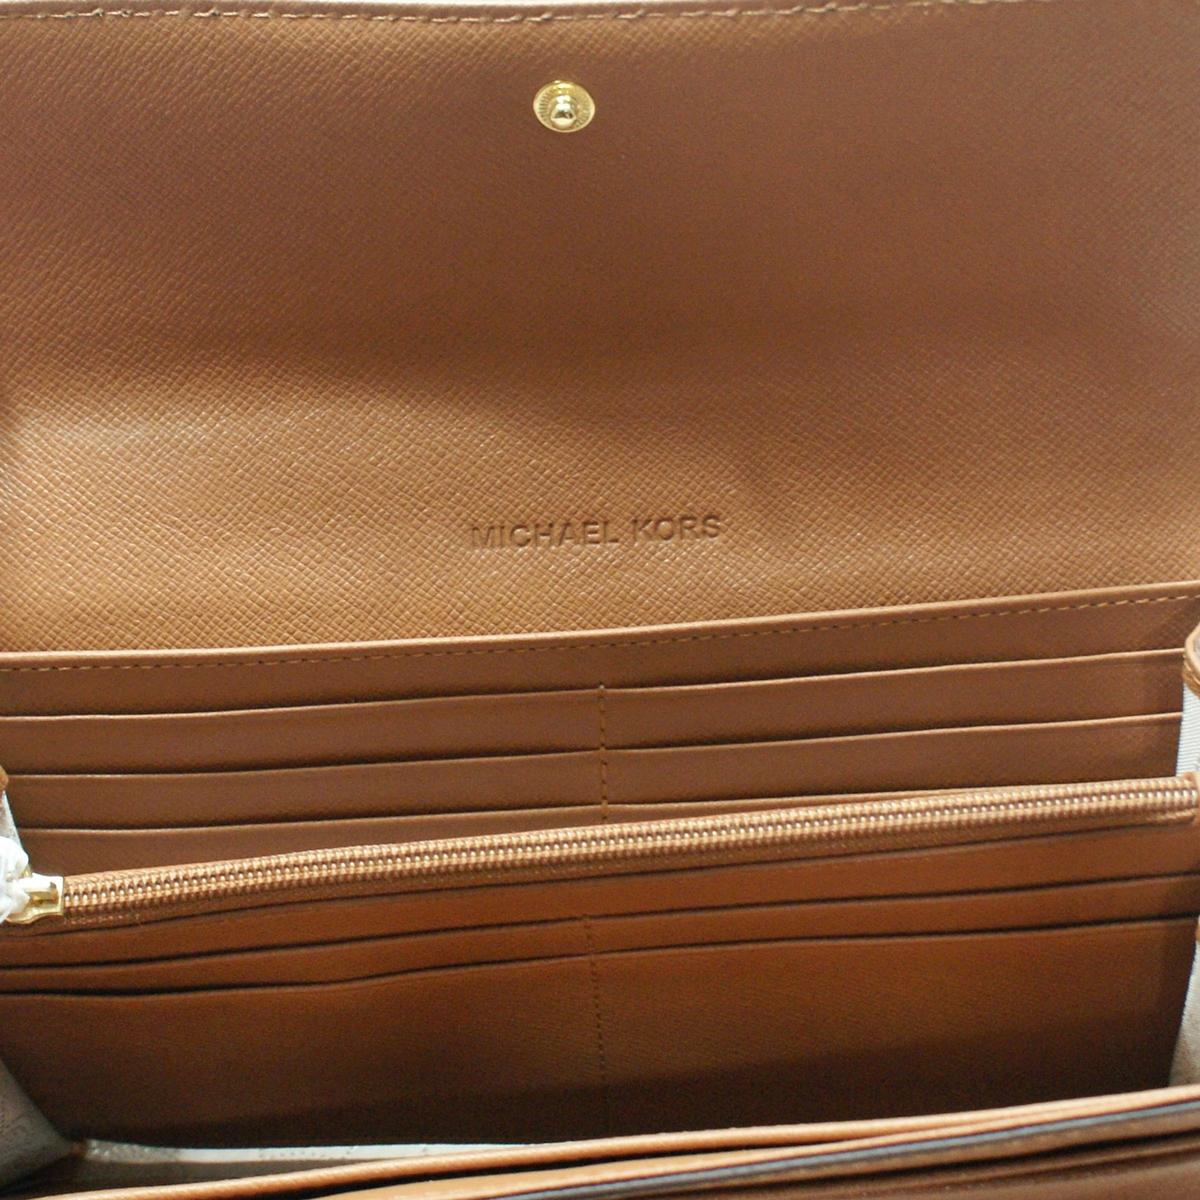 a41bec5c012d7 Home · Michael Kors · Hamilton Genuine Leather Large Flap Wallet Luggage.  CLICK THUMBNAIL TO ZOOM. Found ...